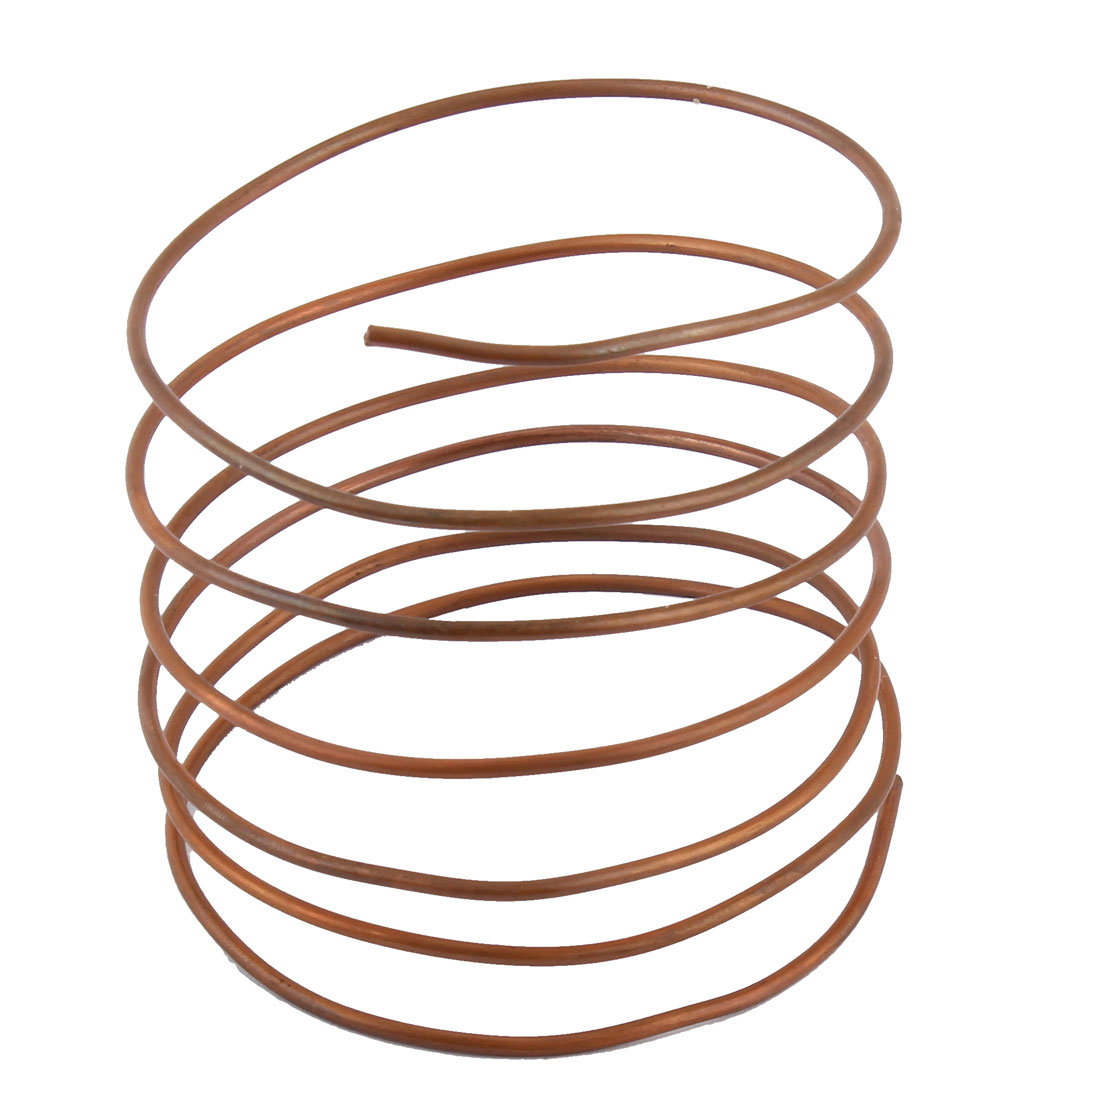 1.4M Length 1.8mm Diameter Copper Refrigeration Tubing Tube Pipe Coil